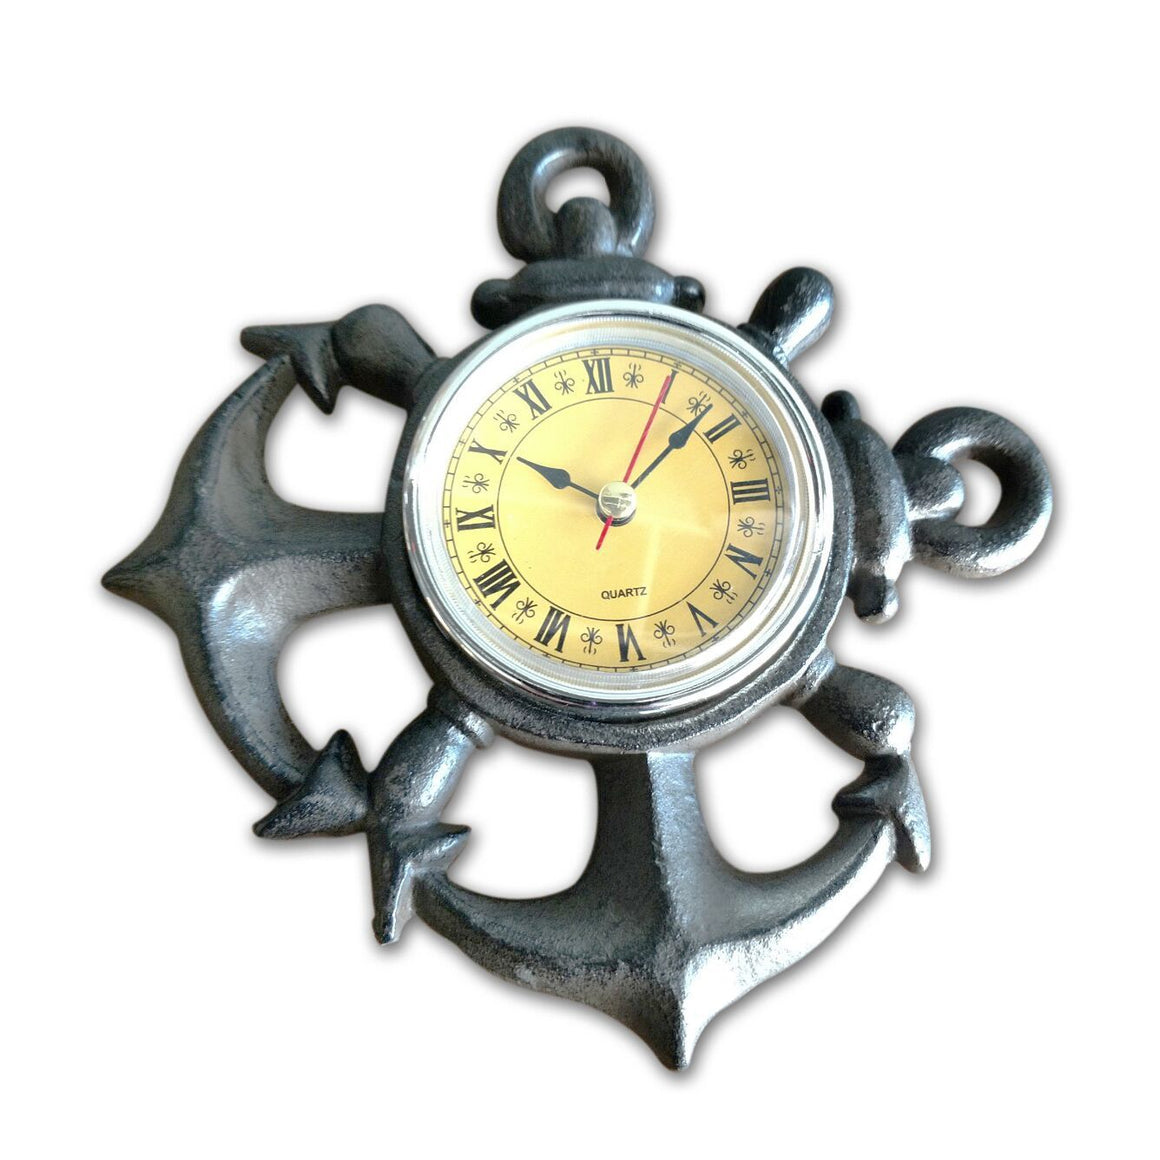 Nautical Anchor Metal Wall Clock - Cast Iron - Roman Numeral Dial - Rustic Deco Incorporated